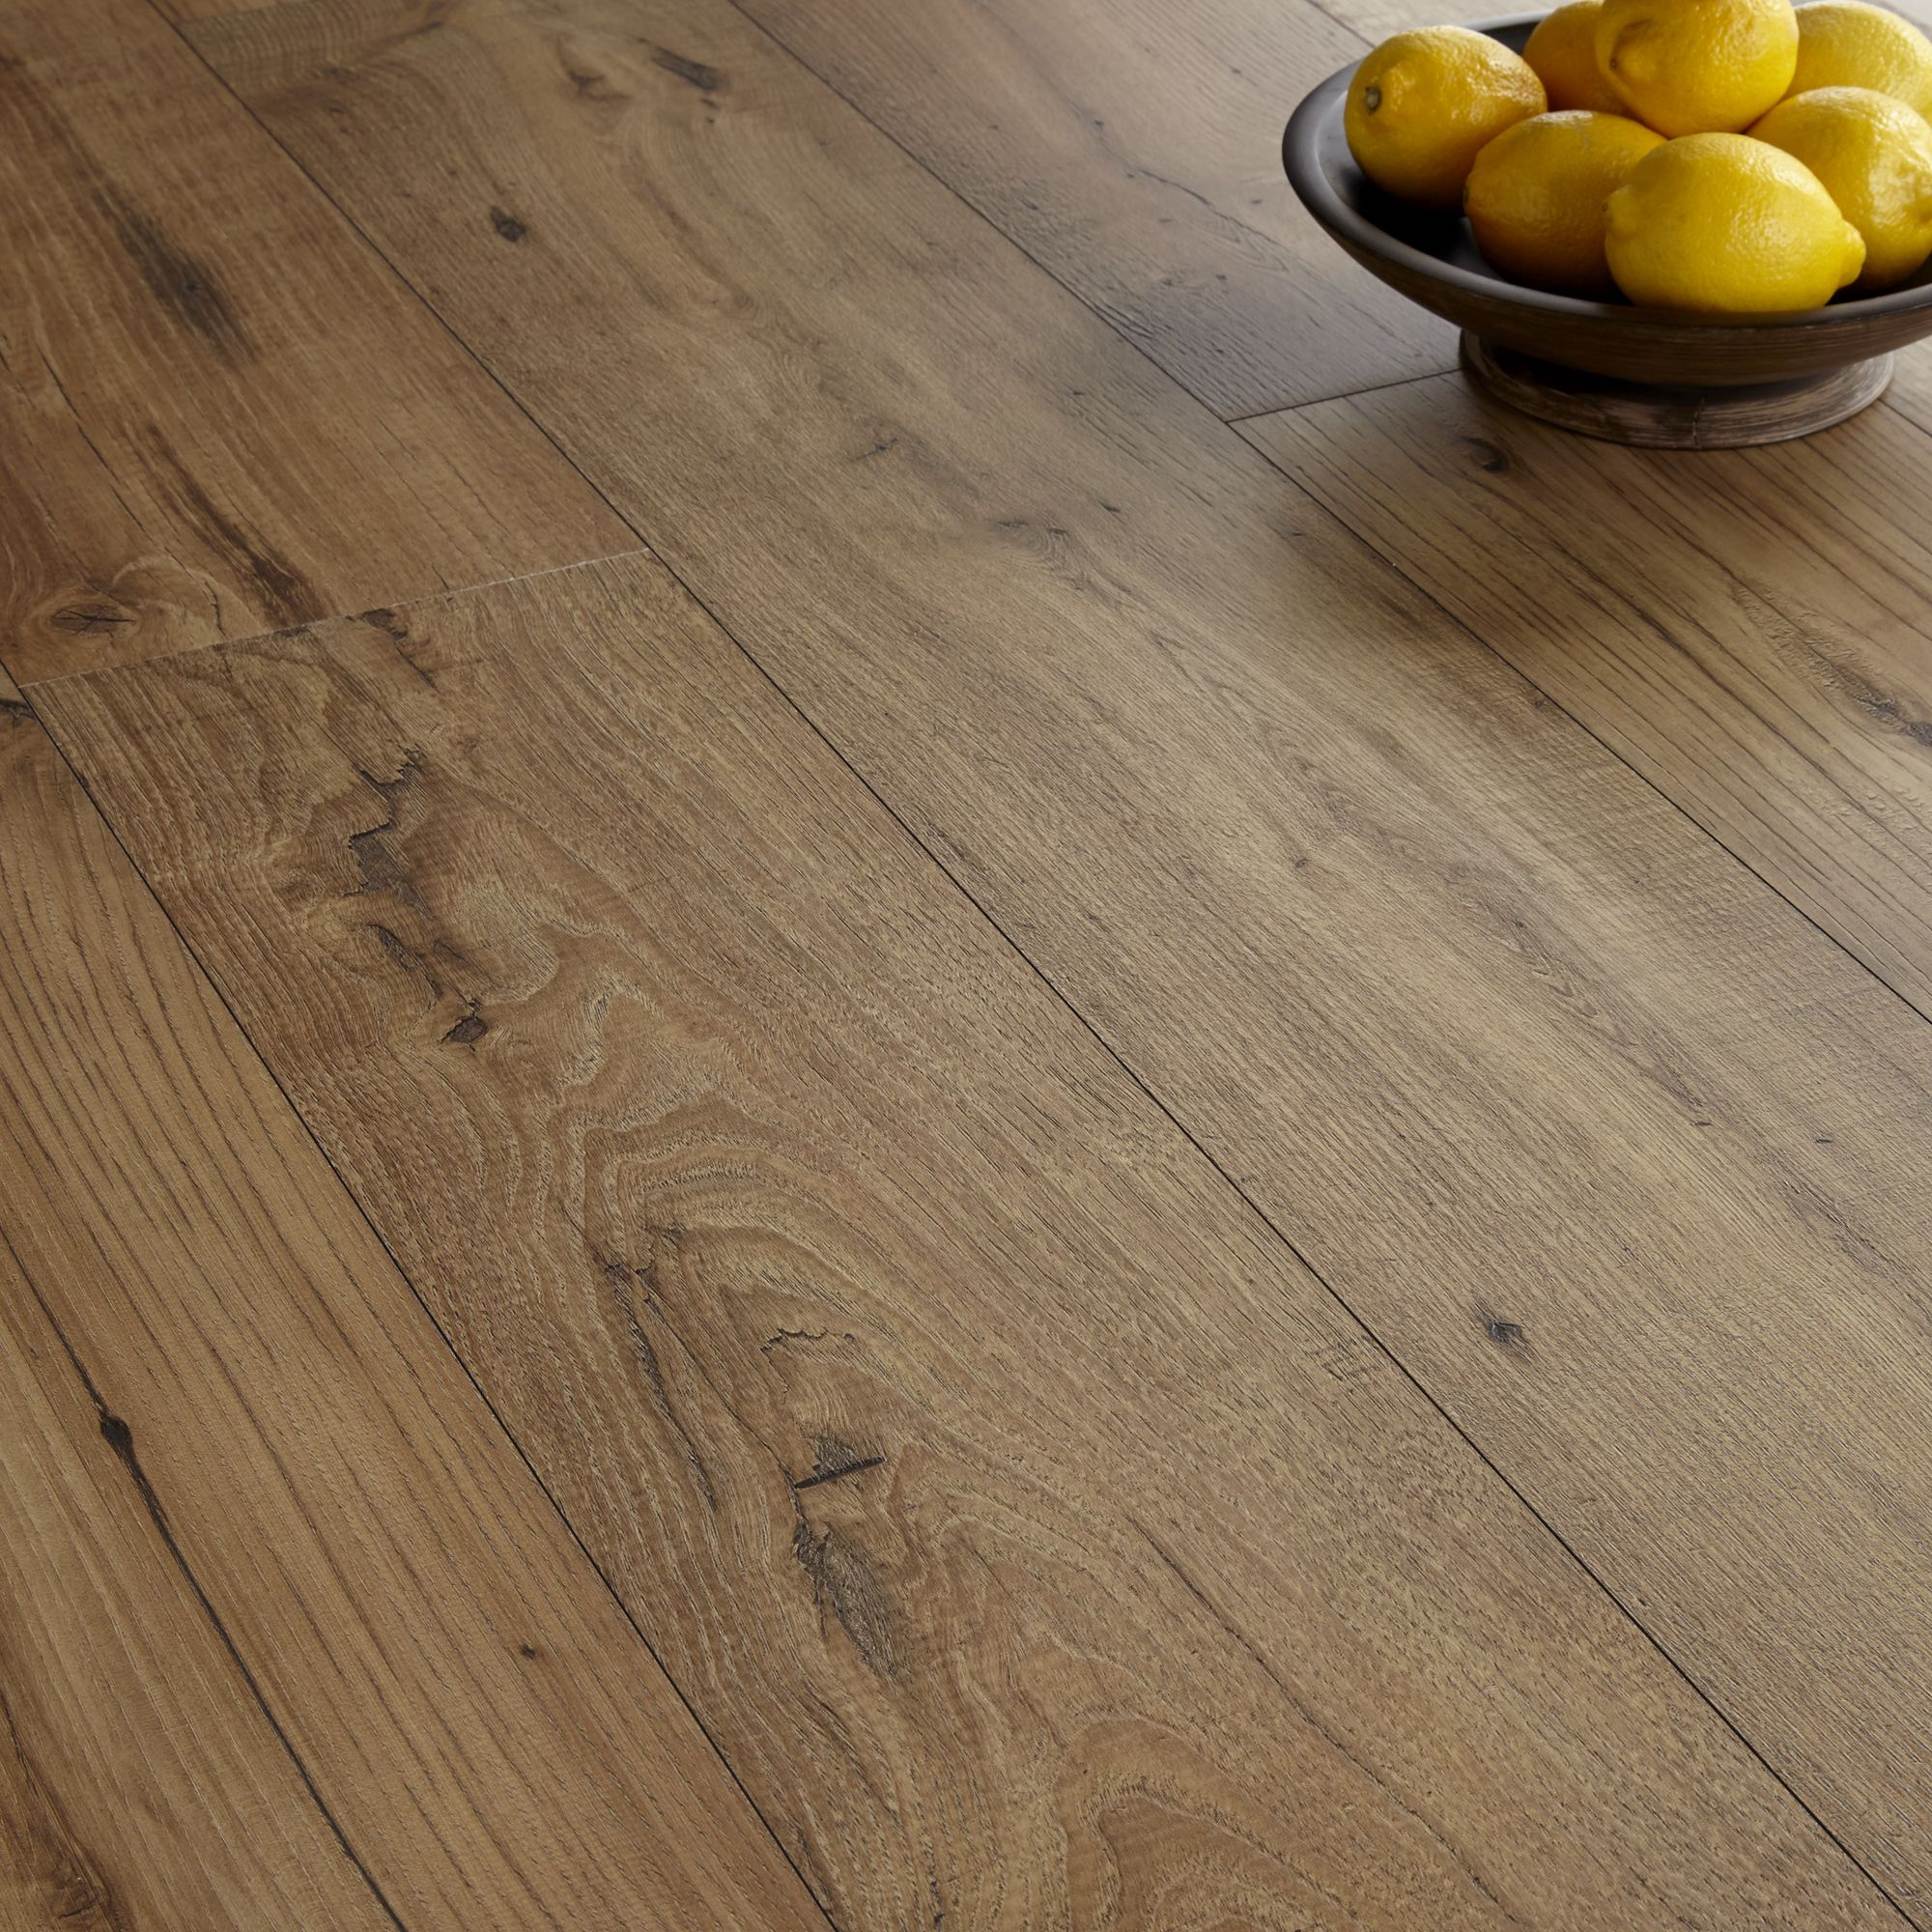 Quickstep Espressivo Natural Chestnut Effect Laminate Flooring 1 83 M² Pack Departments Diy At B Q